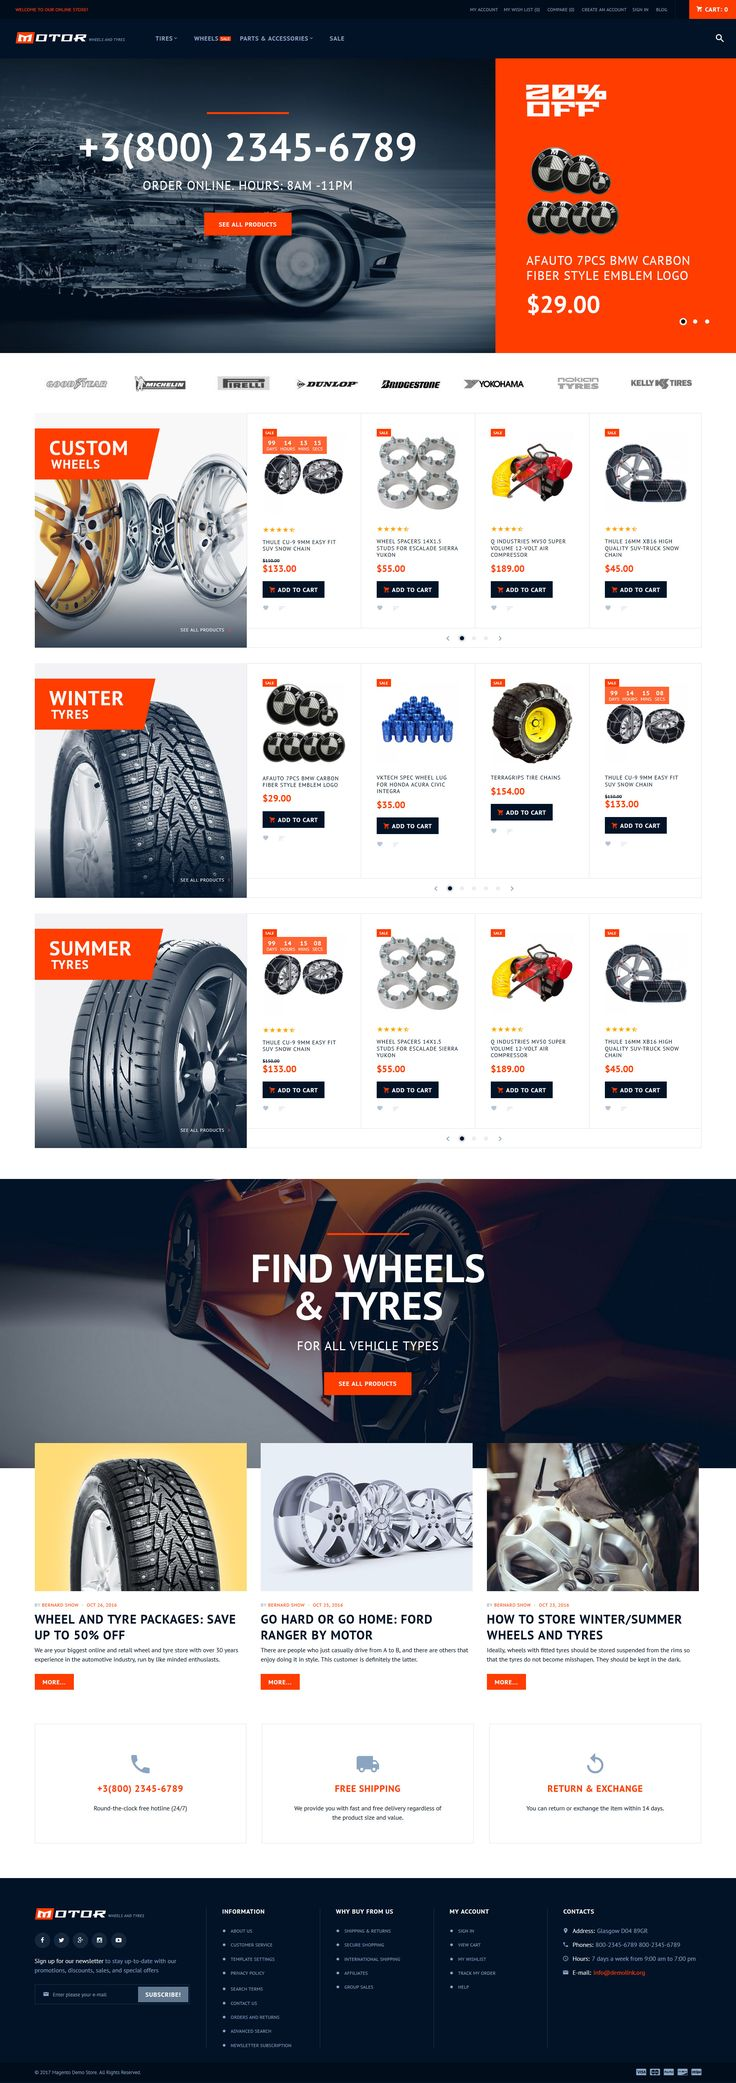 Meet Motor, a feature-rich Car Service Magento2 theme for online stores that specialize in selling tyres, wheels, and other car parts and accessories. The theme comes with a set of features that make a site more user-friendly and comfortable for purchases. #magento2 #magentotheme #magentowebsite #carservicewebsite #magentotemplate  https://www.templatemonster.com/magento-themes/motor-car-services-magento-theme-62281.html